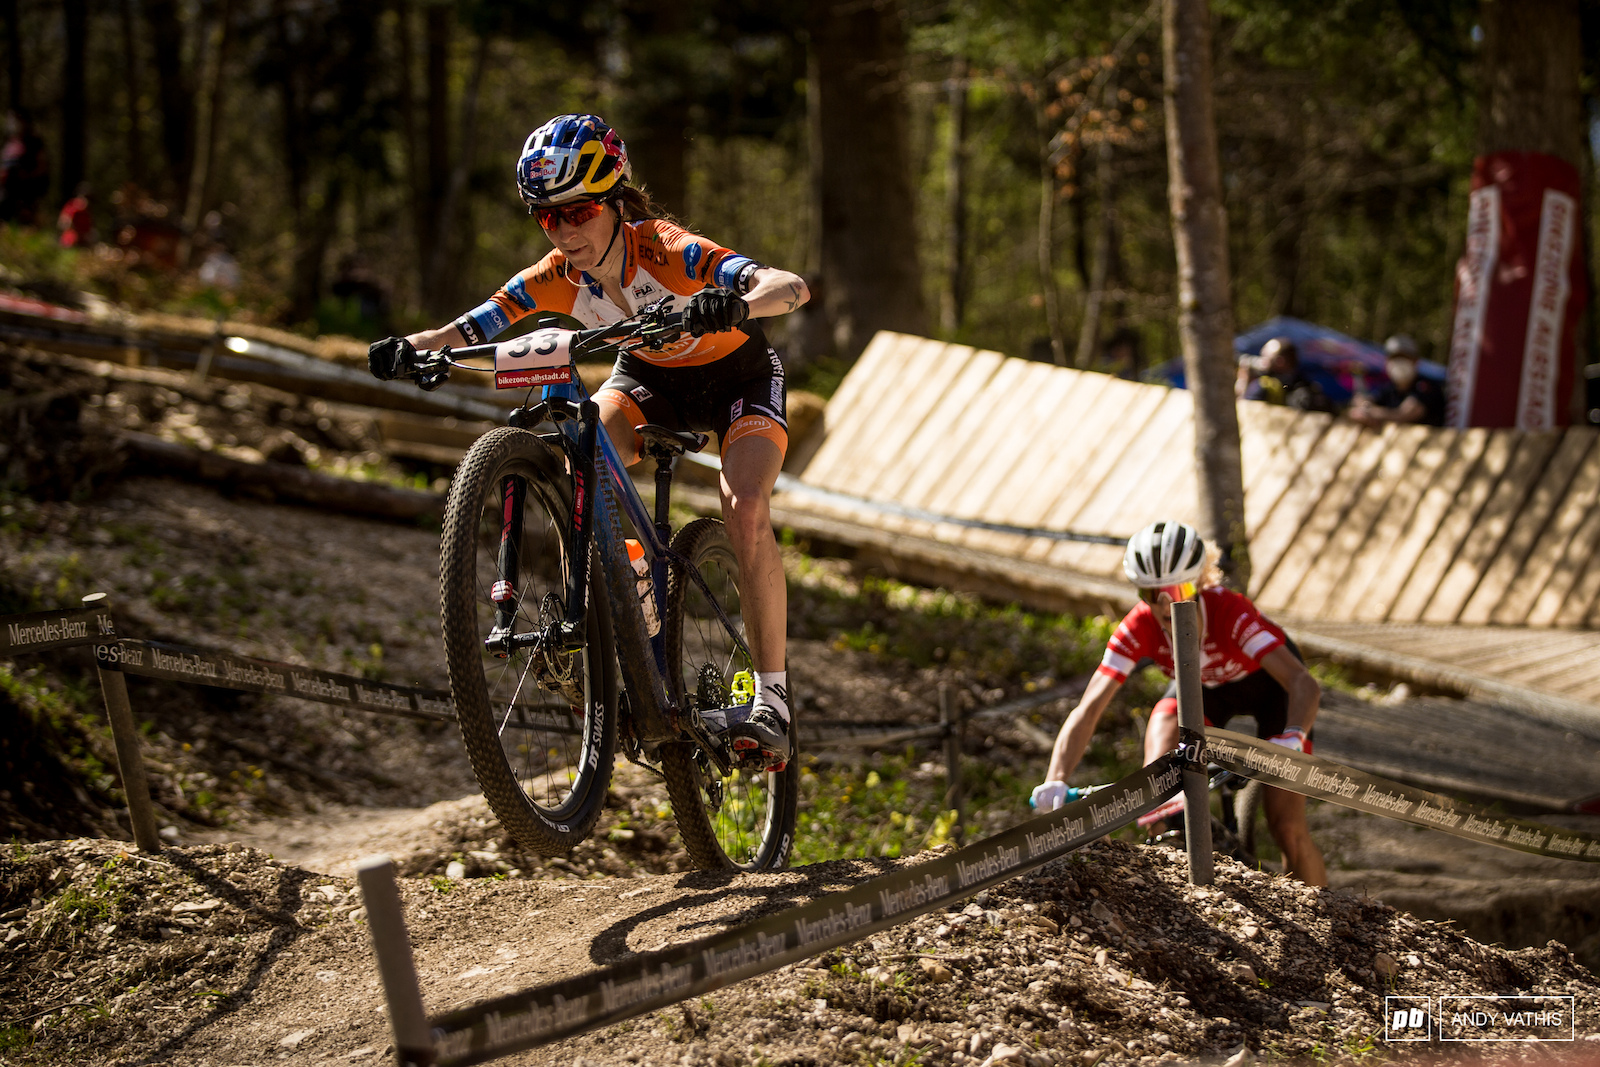 Yana Belomoina catching air and closes out the podium after a strong ride.